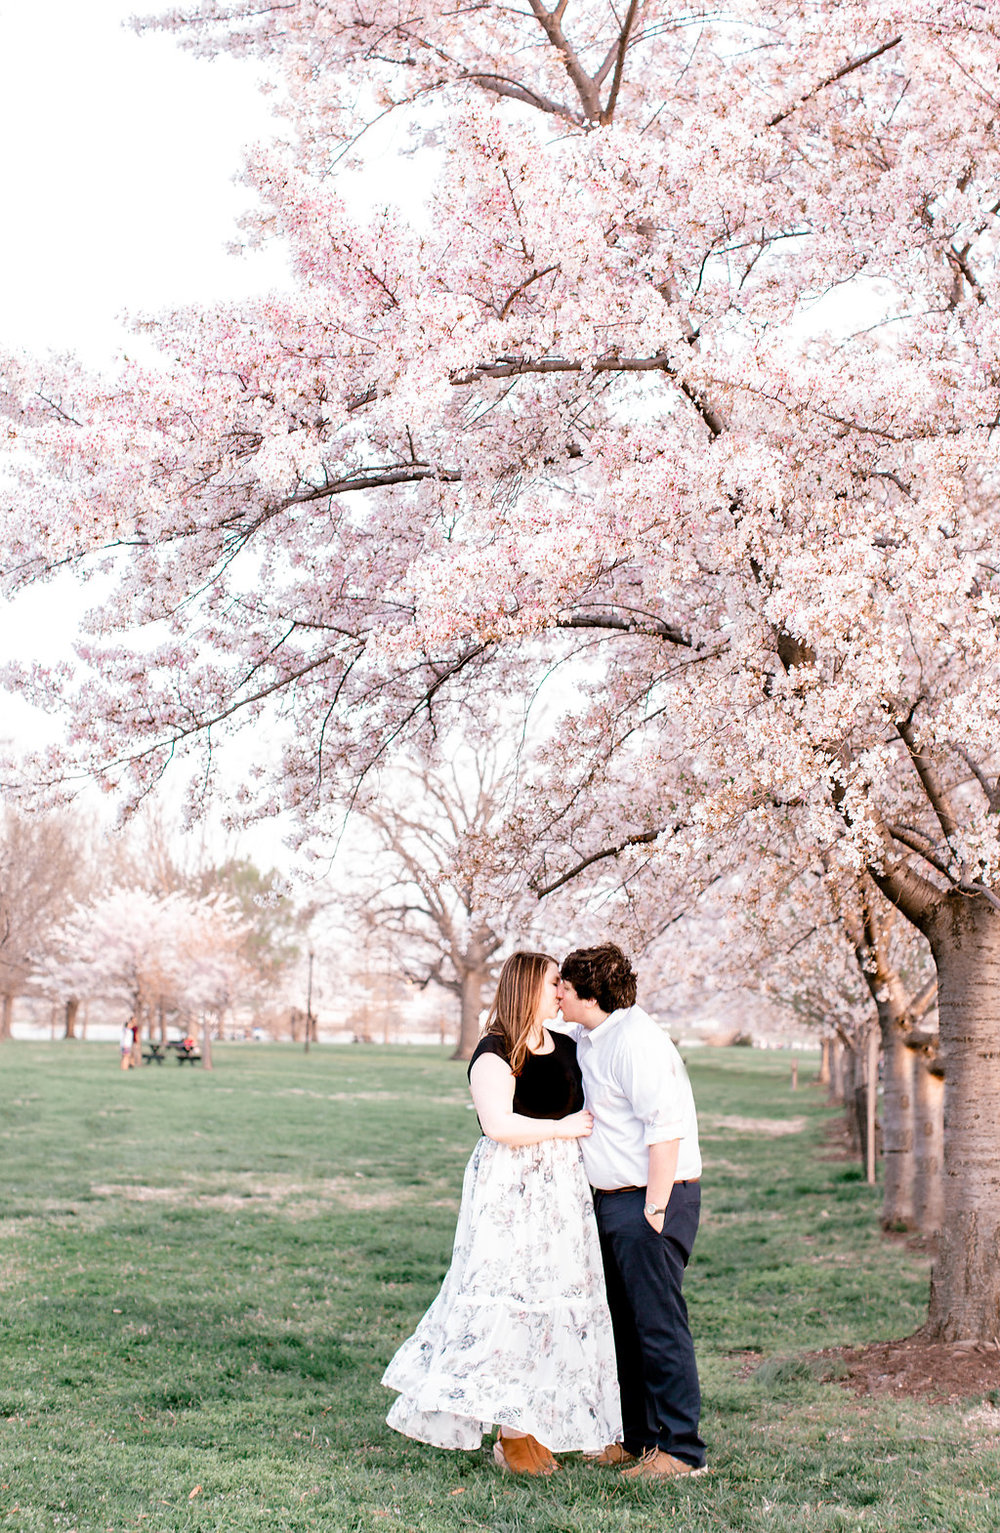 Hains Point Cherry Blossom Engagement Photography   Washington, D.C.   Andrea Rodway Photography